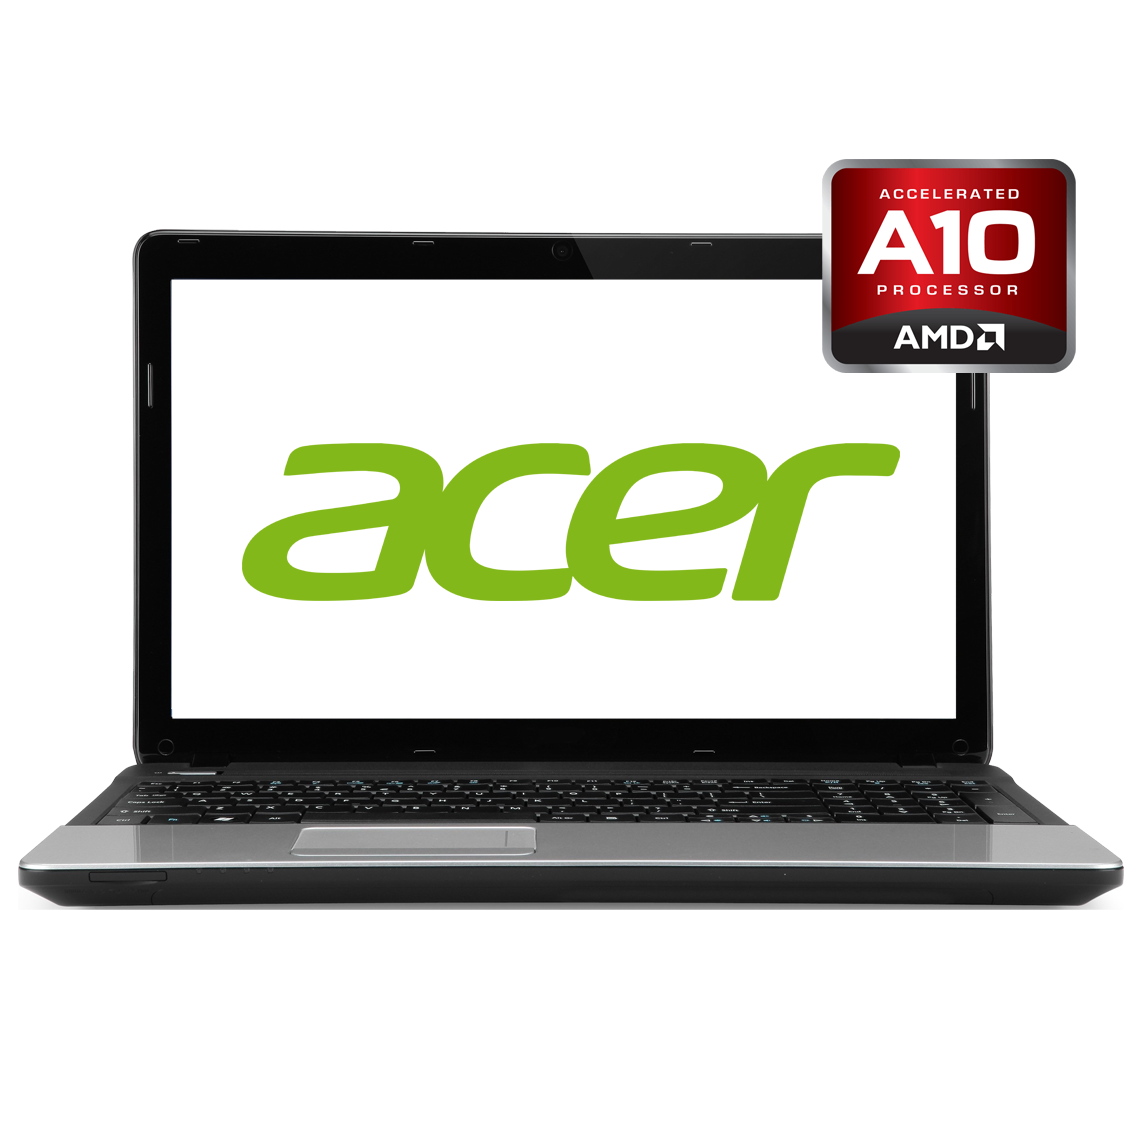 Acer - 15.6 inch AMD A10